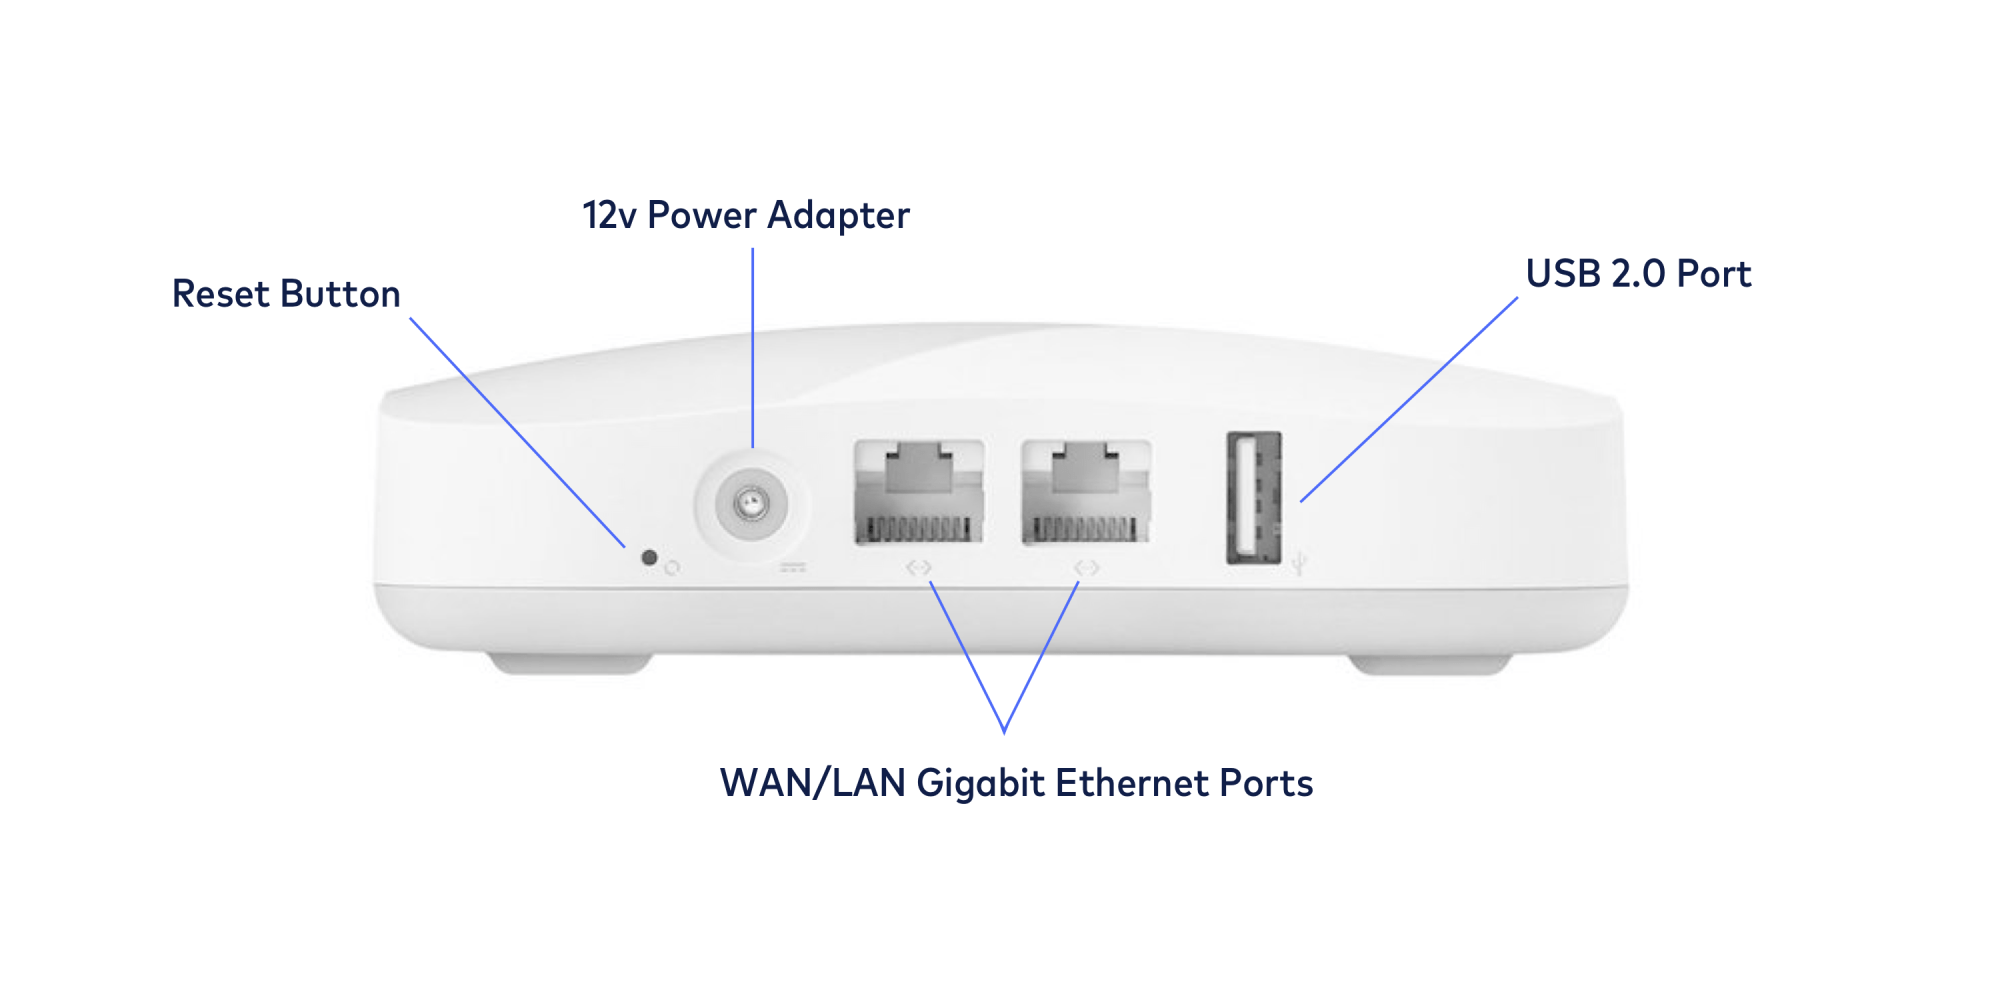 hight resolution of the 1st generation eero has a pin hole style reset button a barrel style 12v power adapter two ethernet ports and a usb 2 0 port the usb port on the